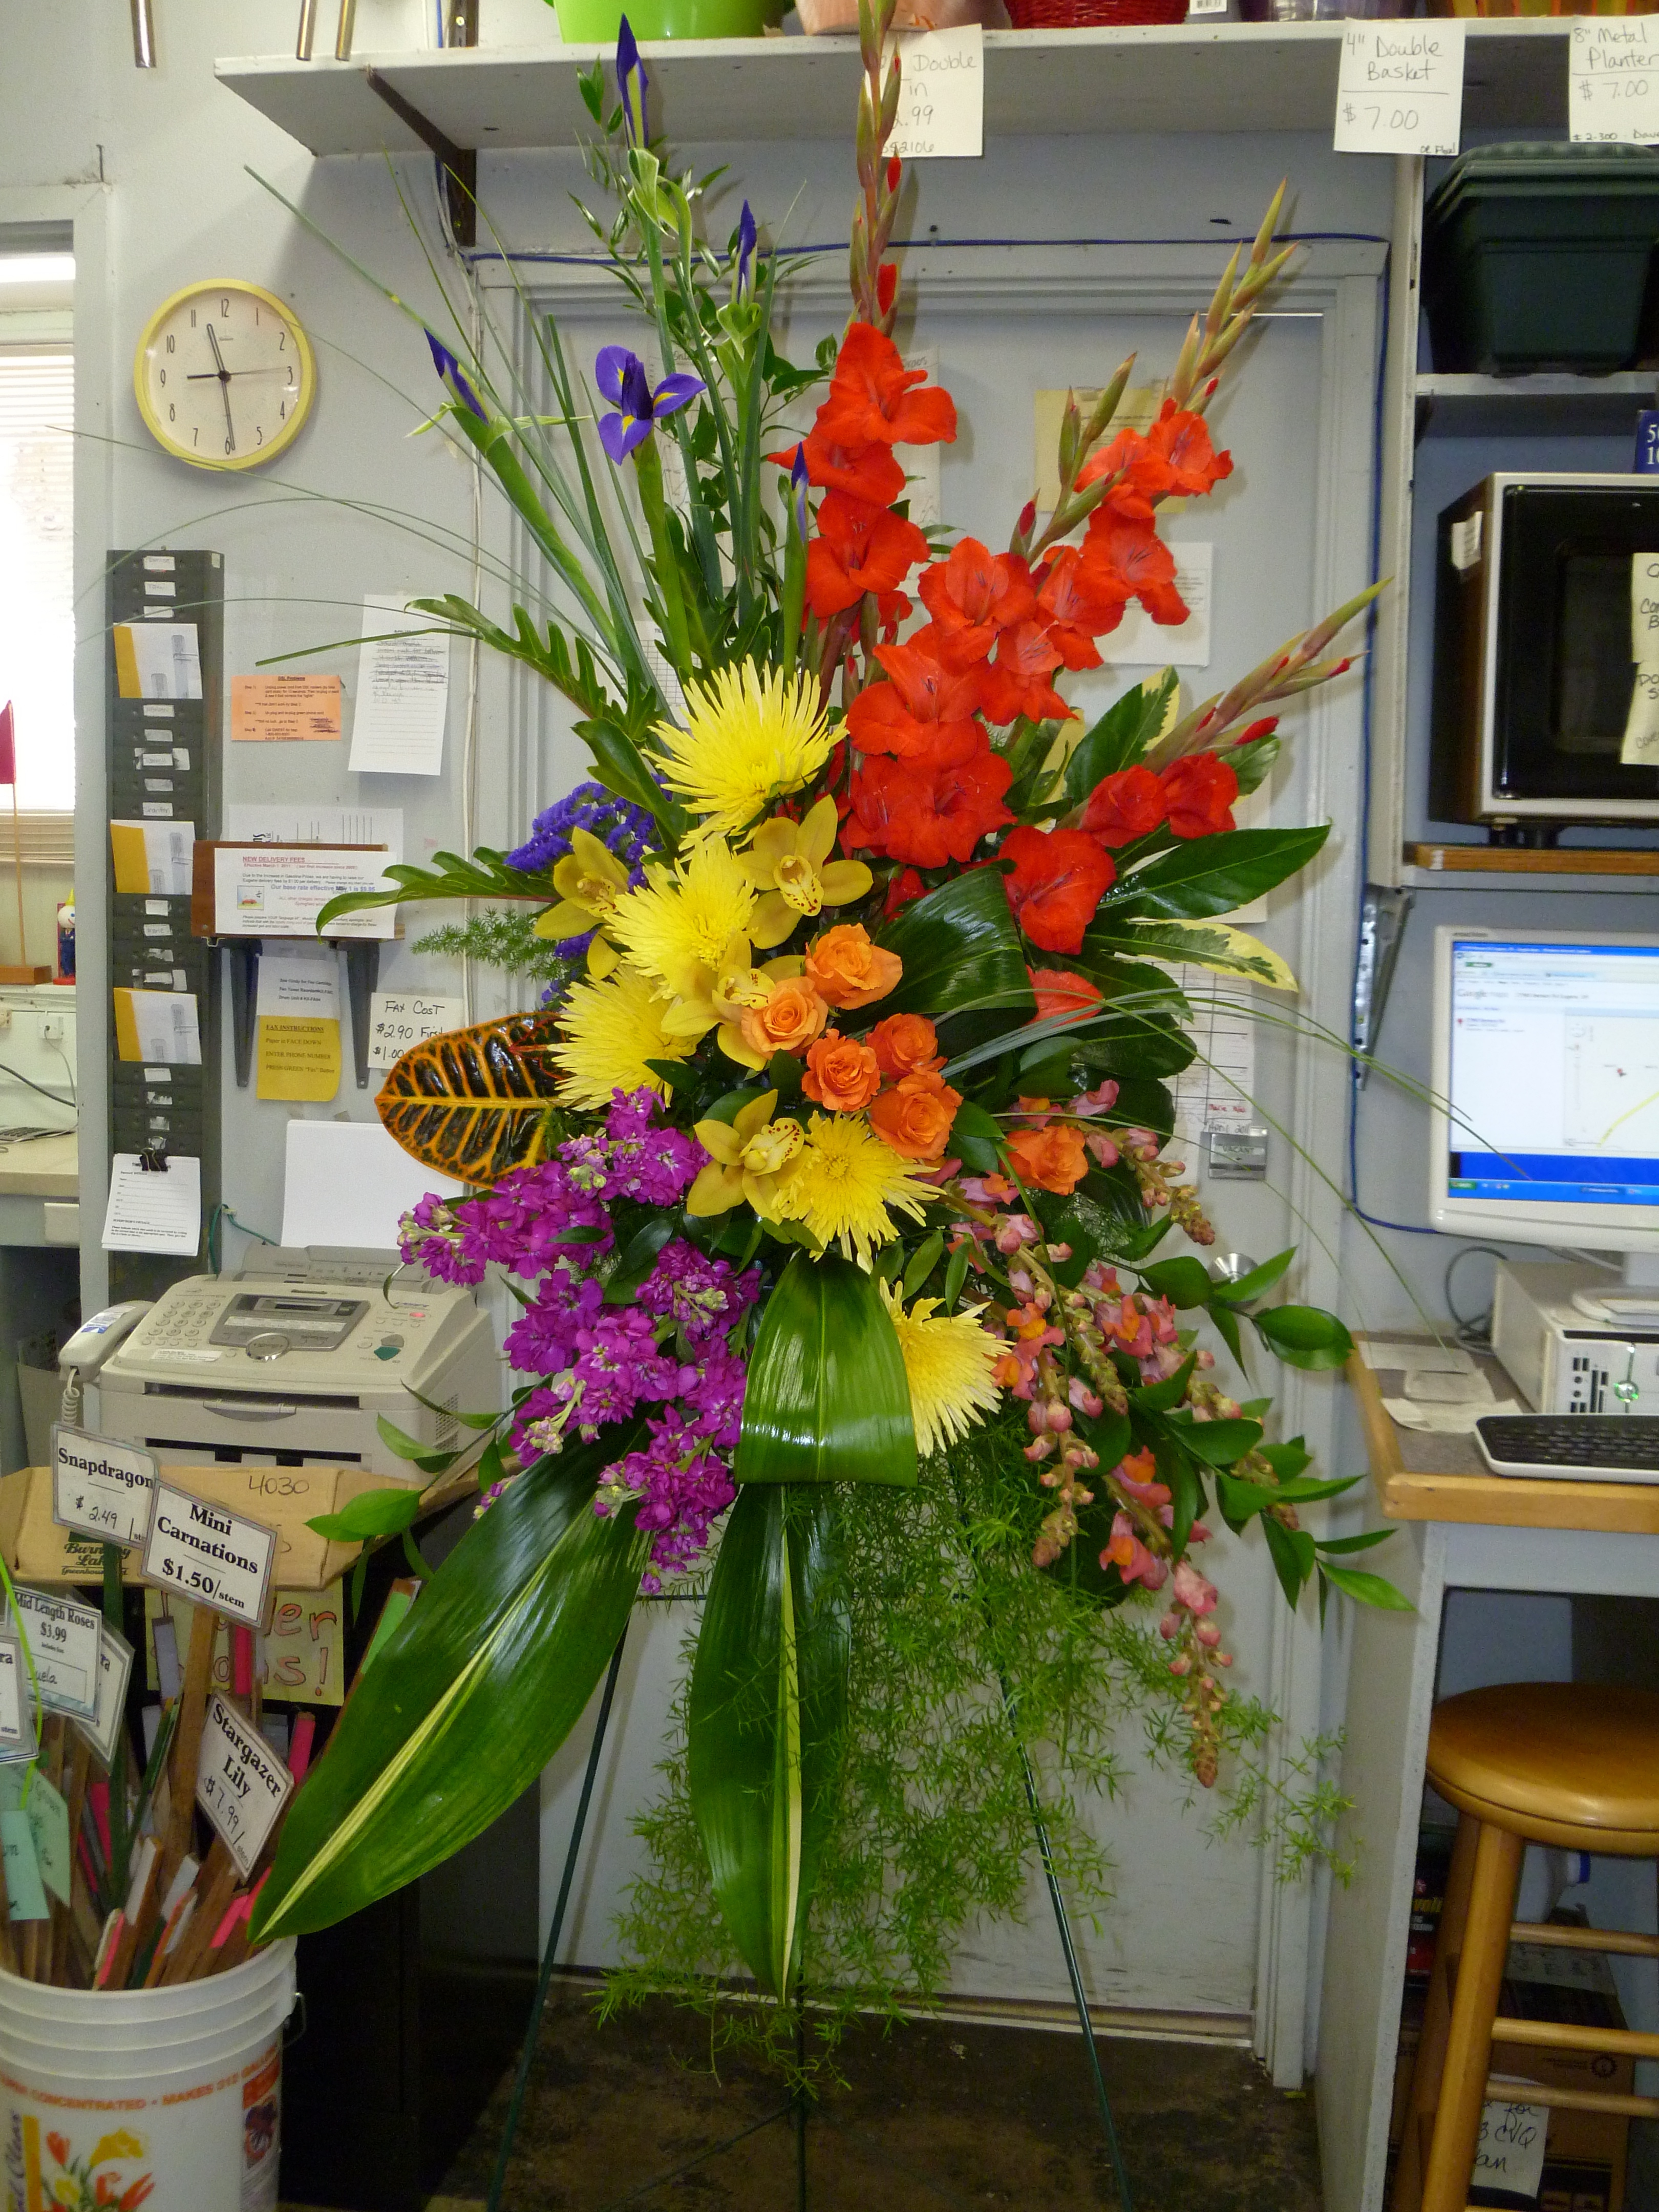 Memorial service funeral flowers dandelions flowers gifts rate this izmirmasajfo Choice Image